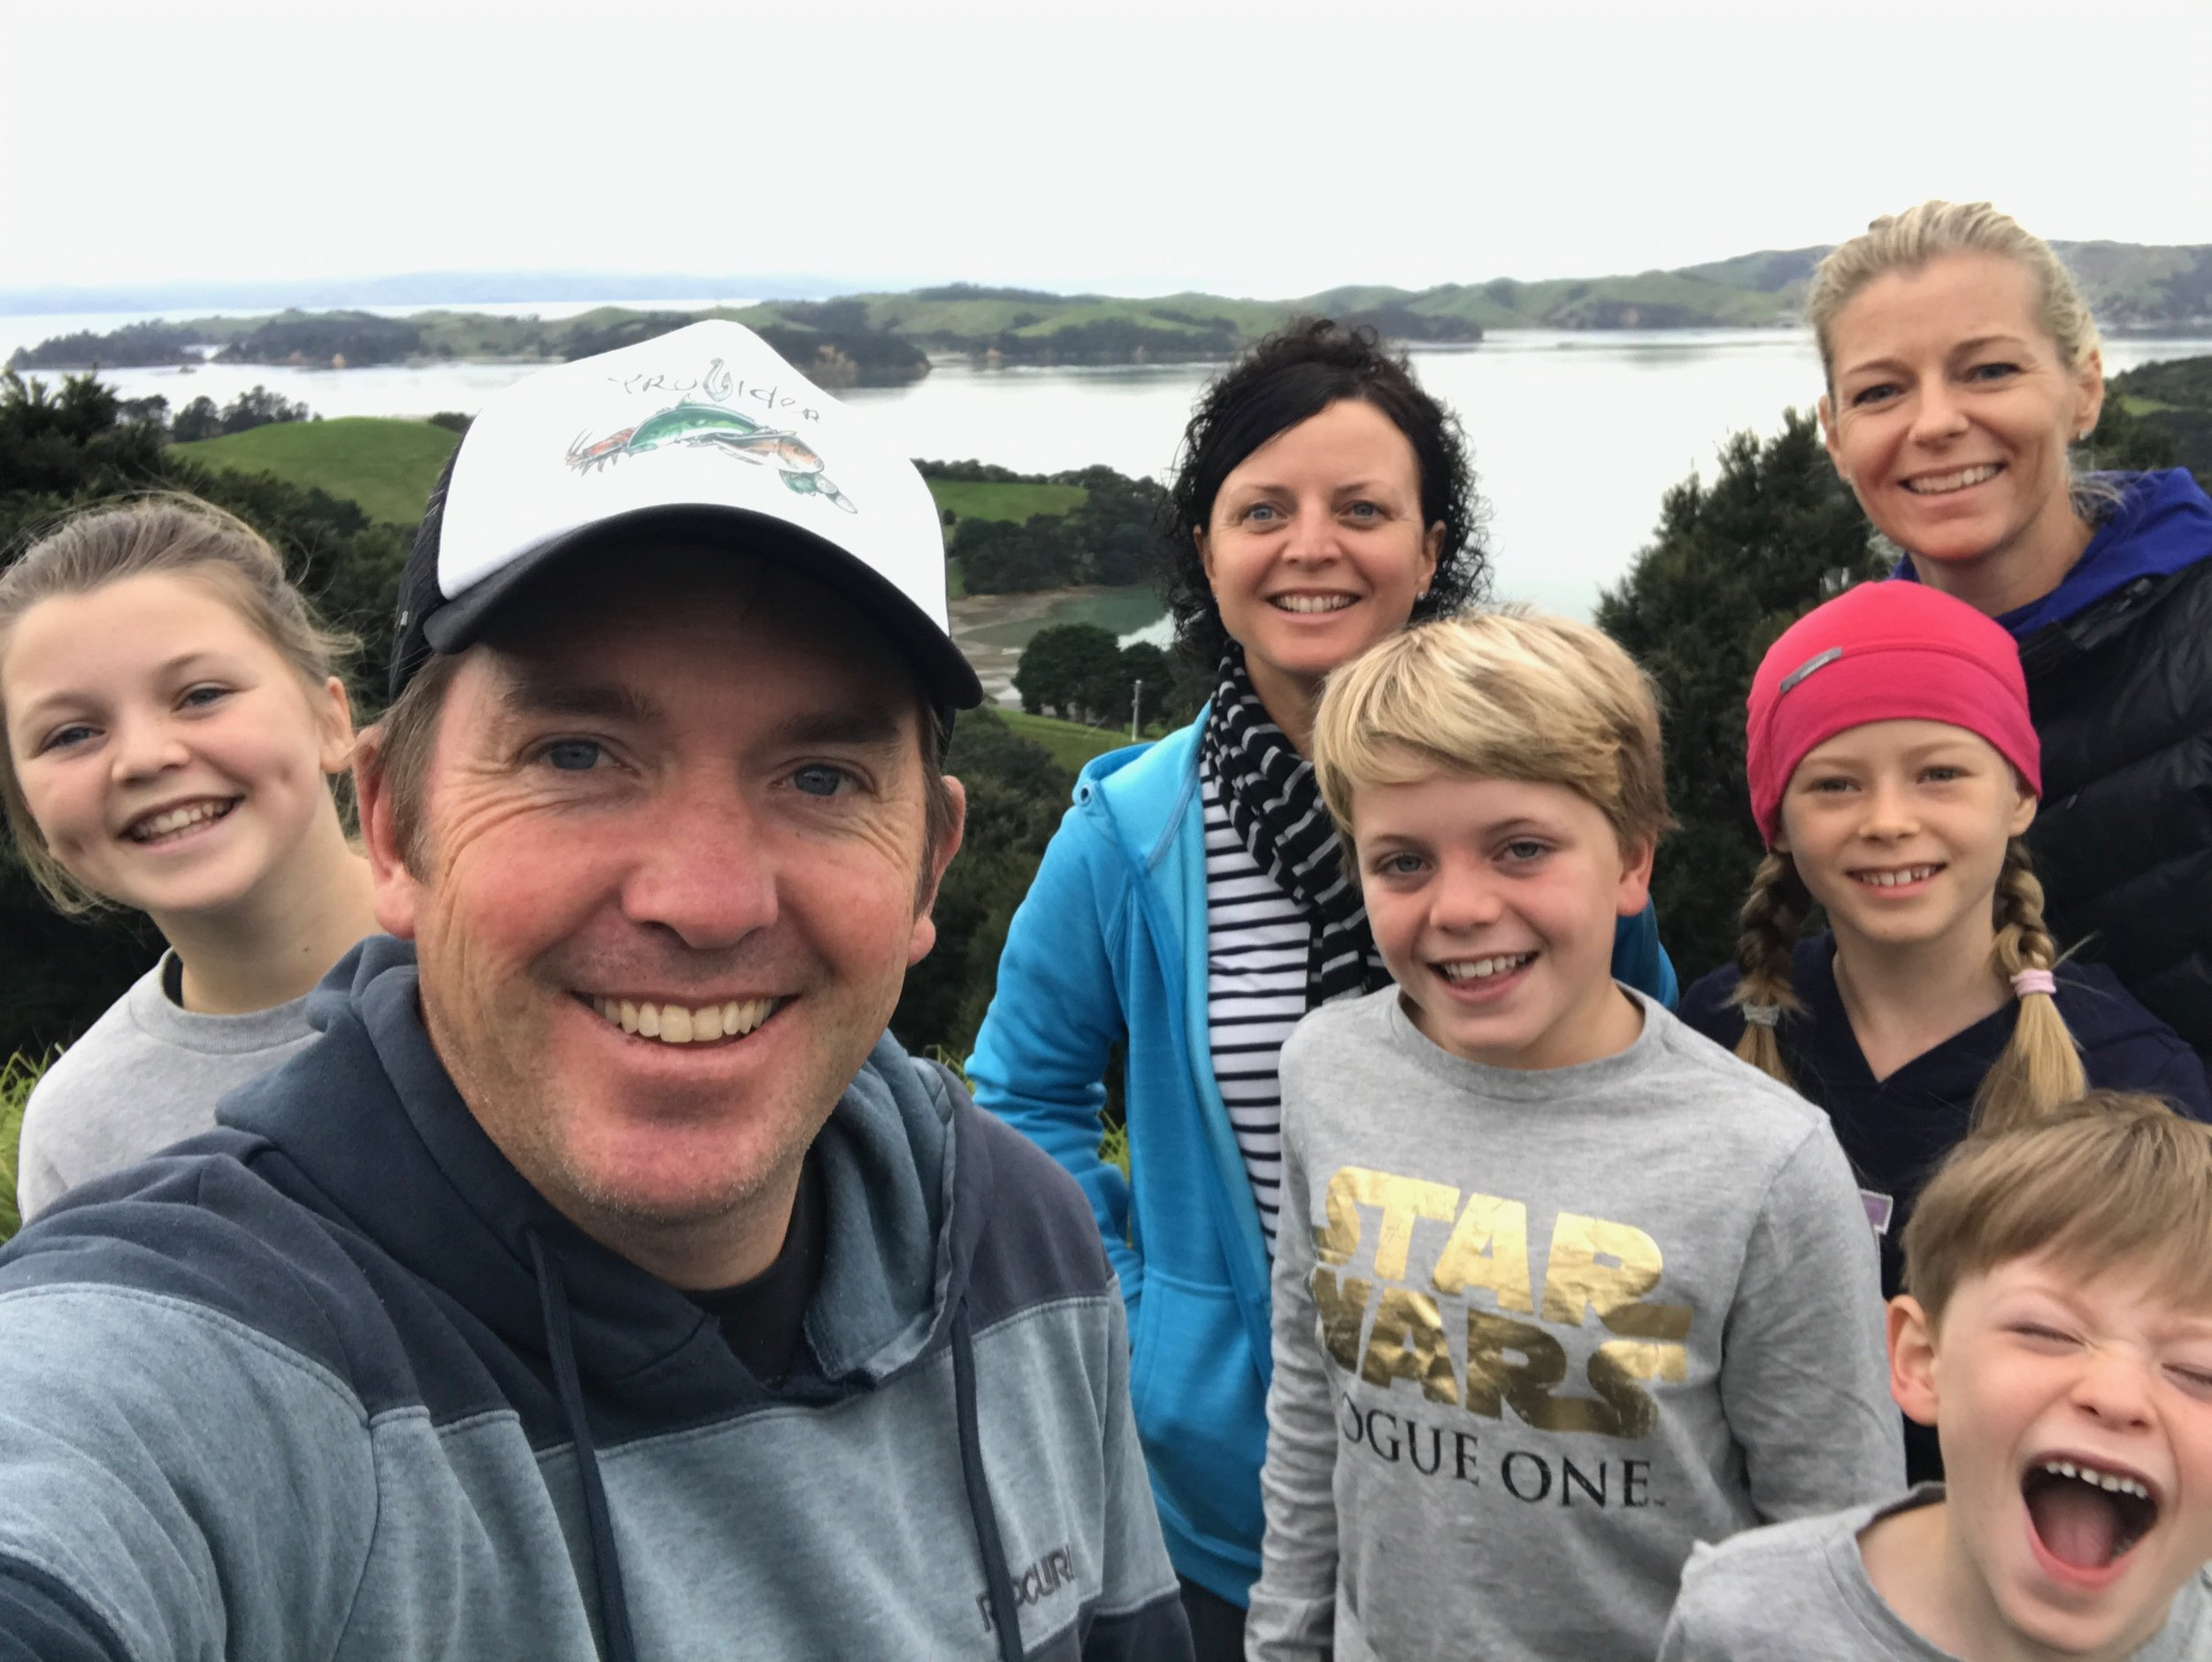 I took this photo the same day I wrote this article, enjoying good times with friends and family at Waiheke Island, I love the smiles!!!